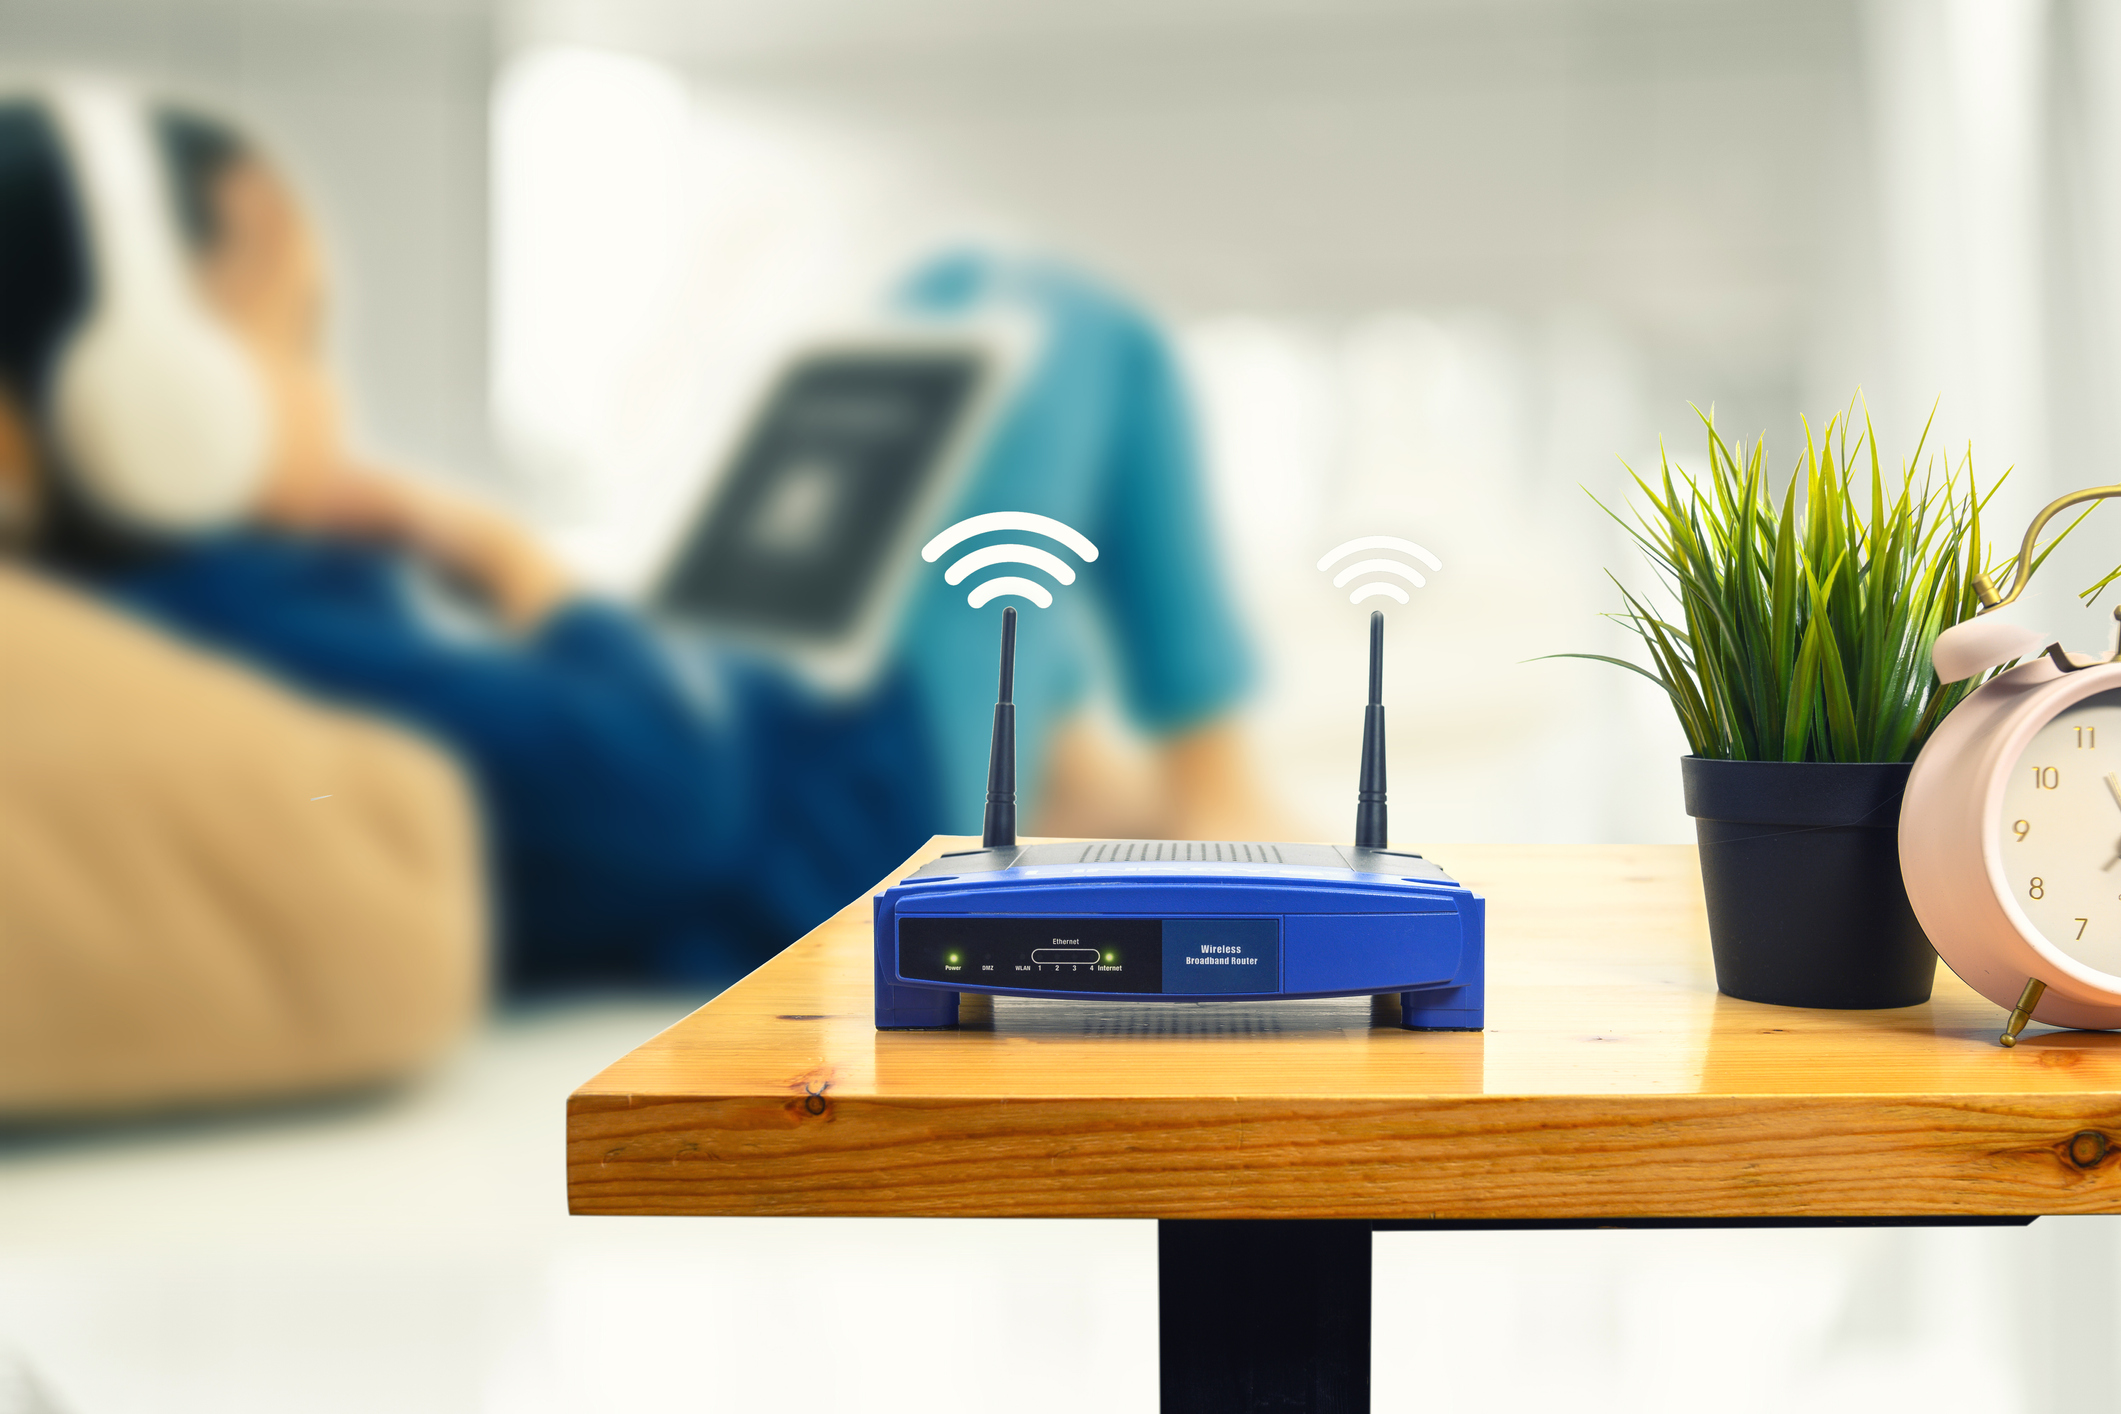 3 tips to improve your home WiFi